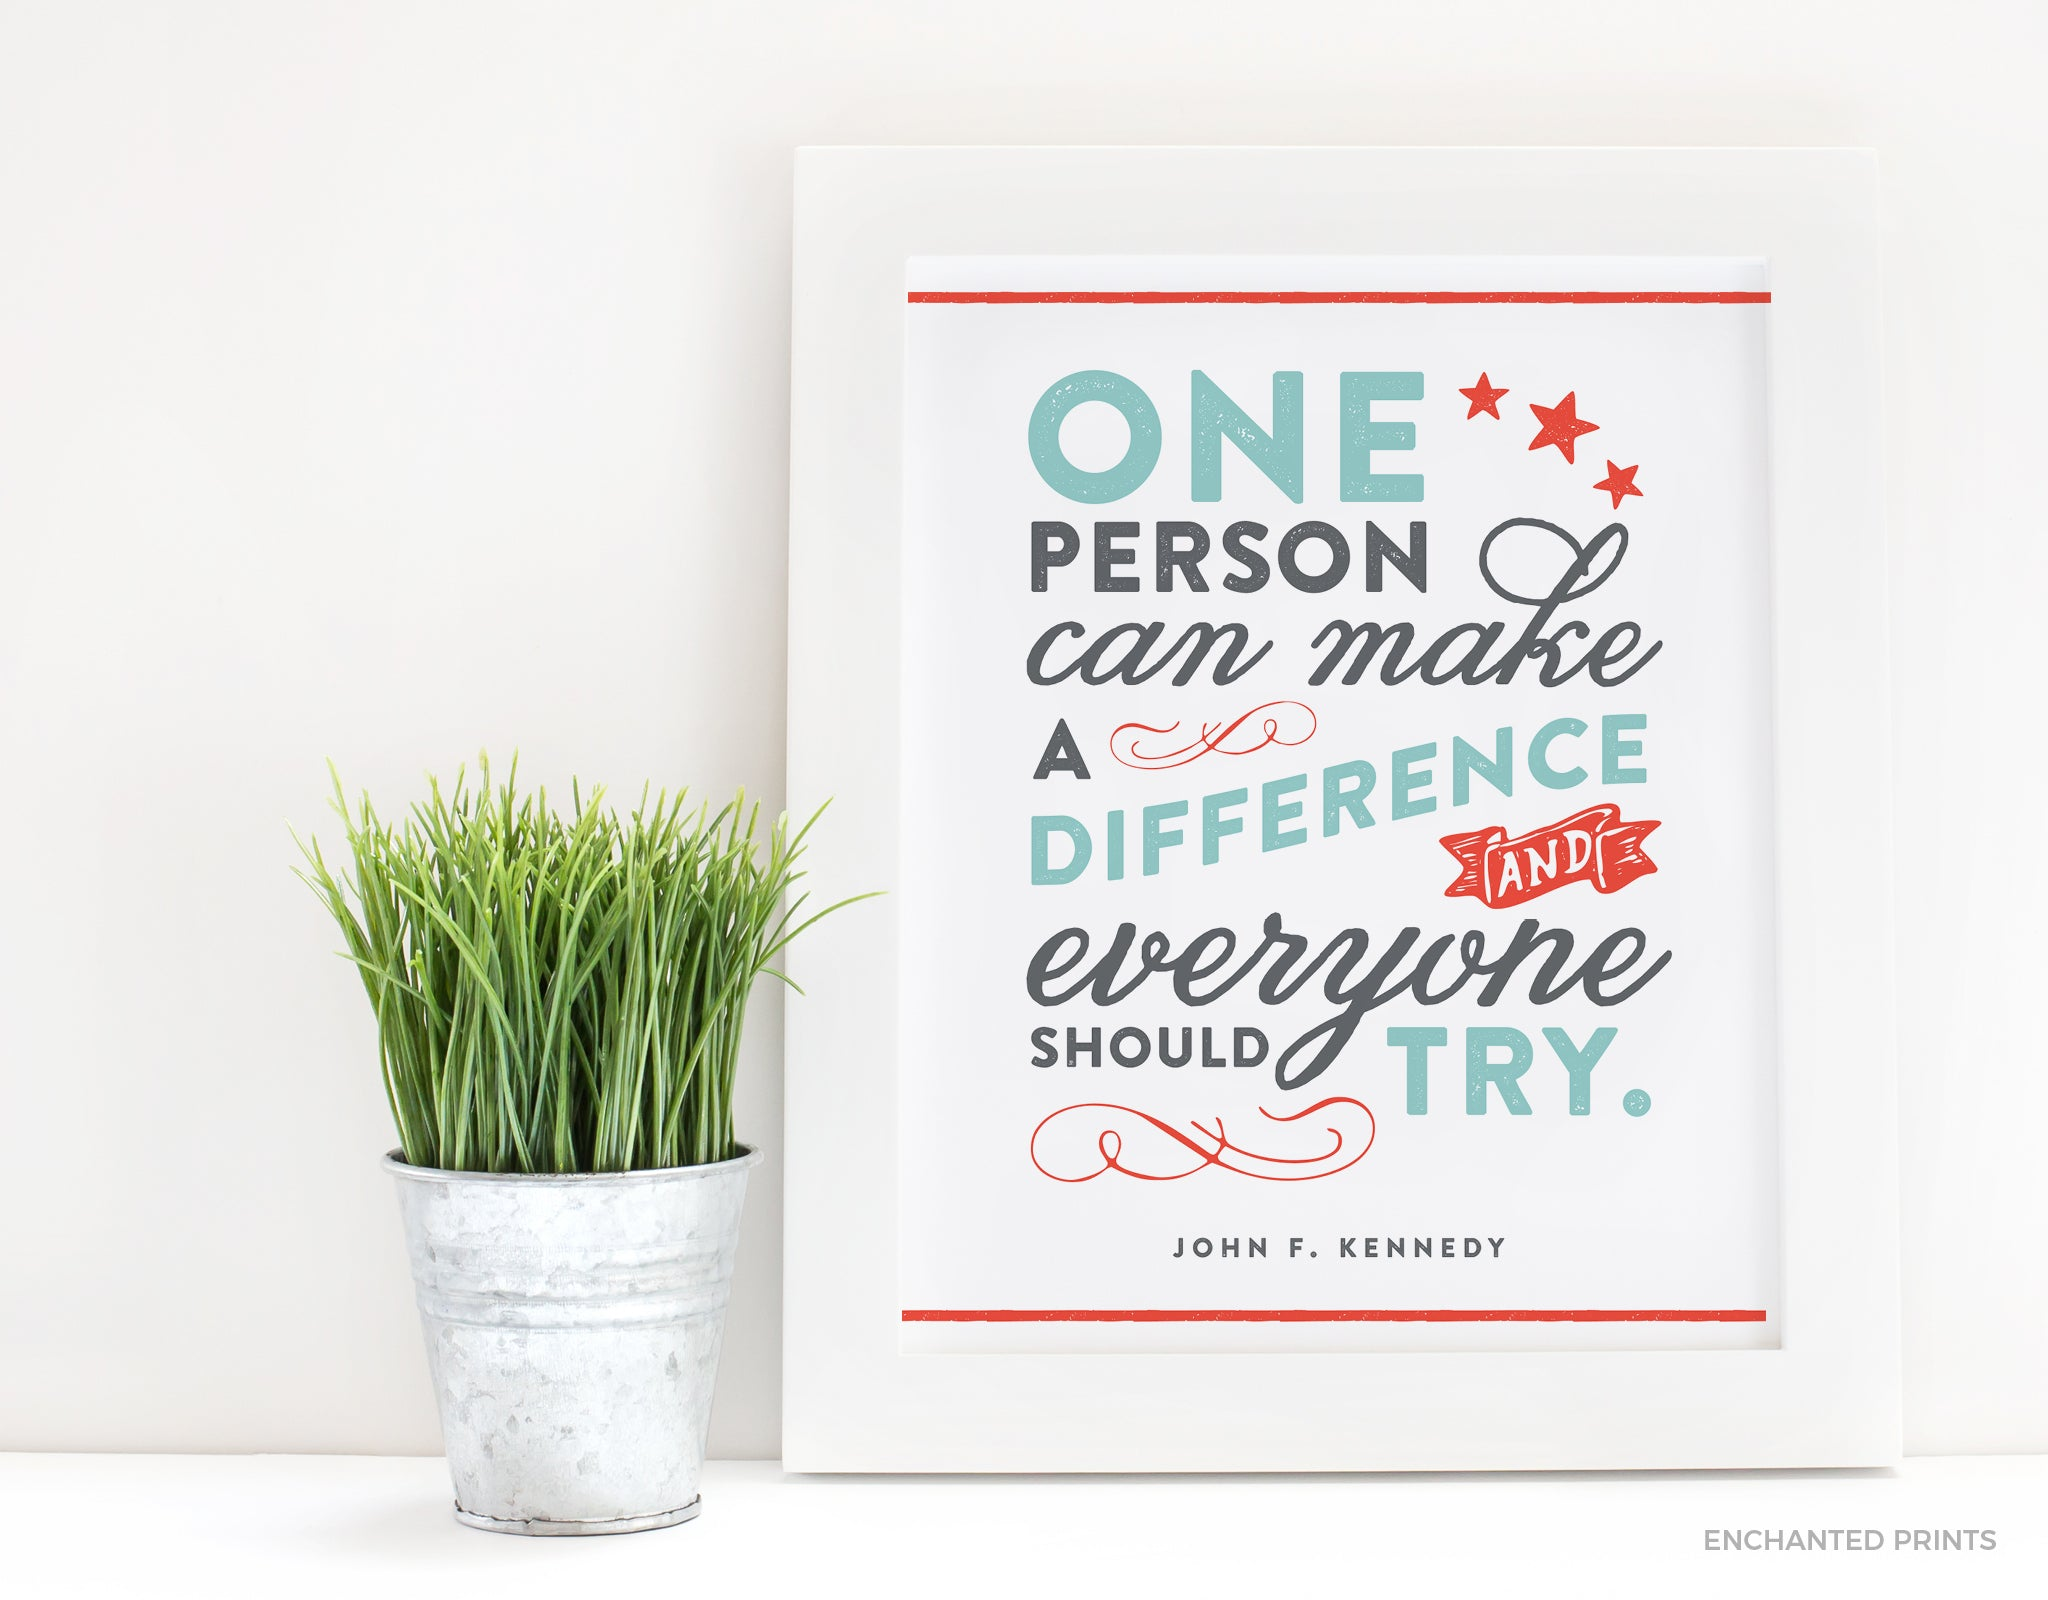 One person can make a difference, from John F. Kennedy